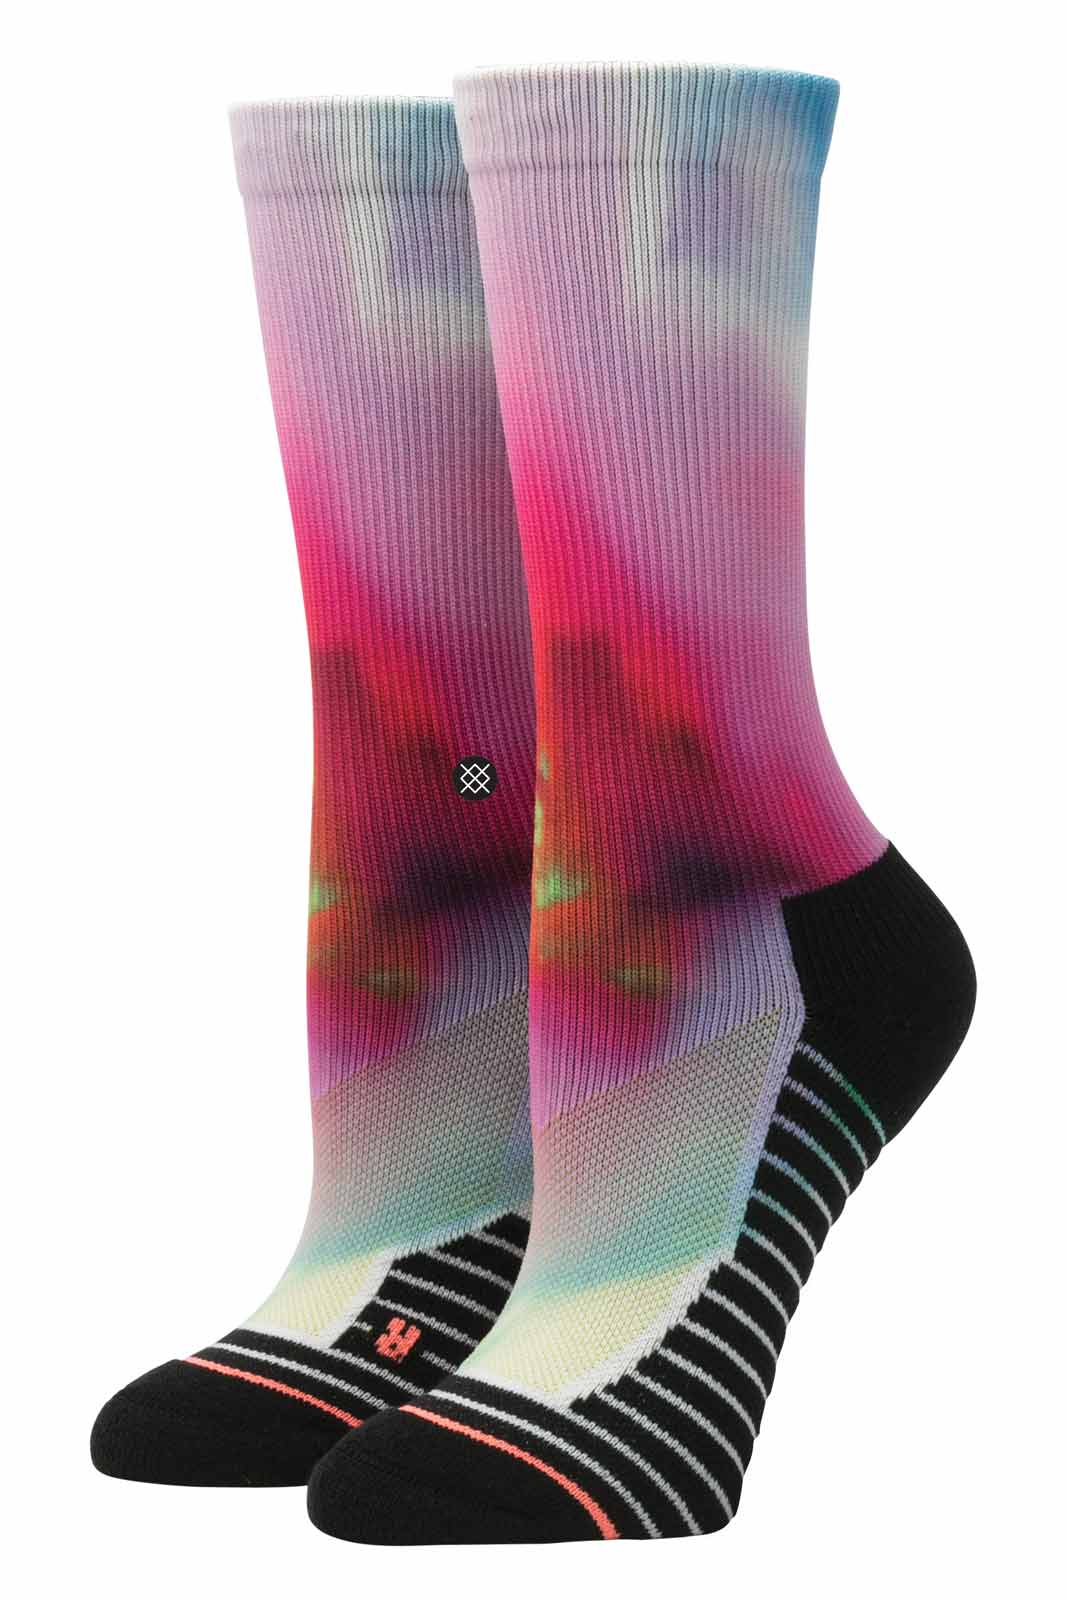 Stance Athletic Flortex - Women's image 2 - The Sports Edit